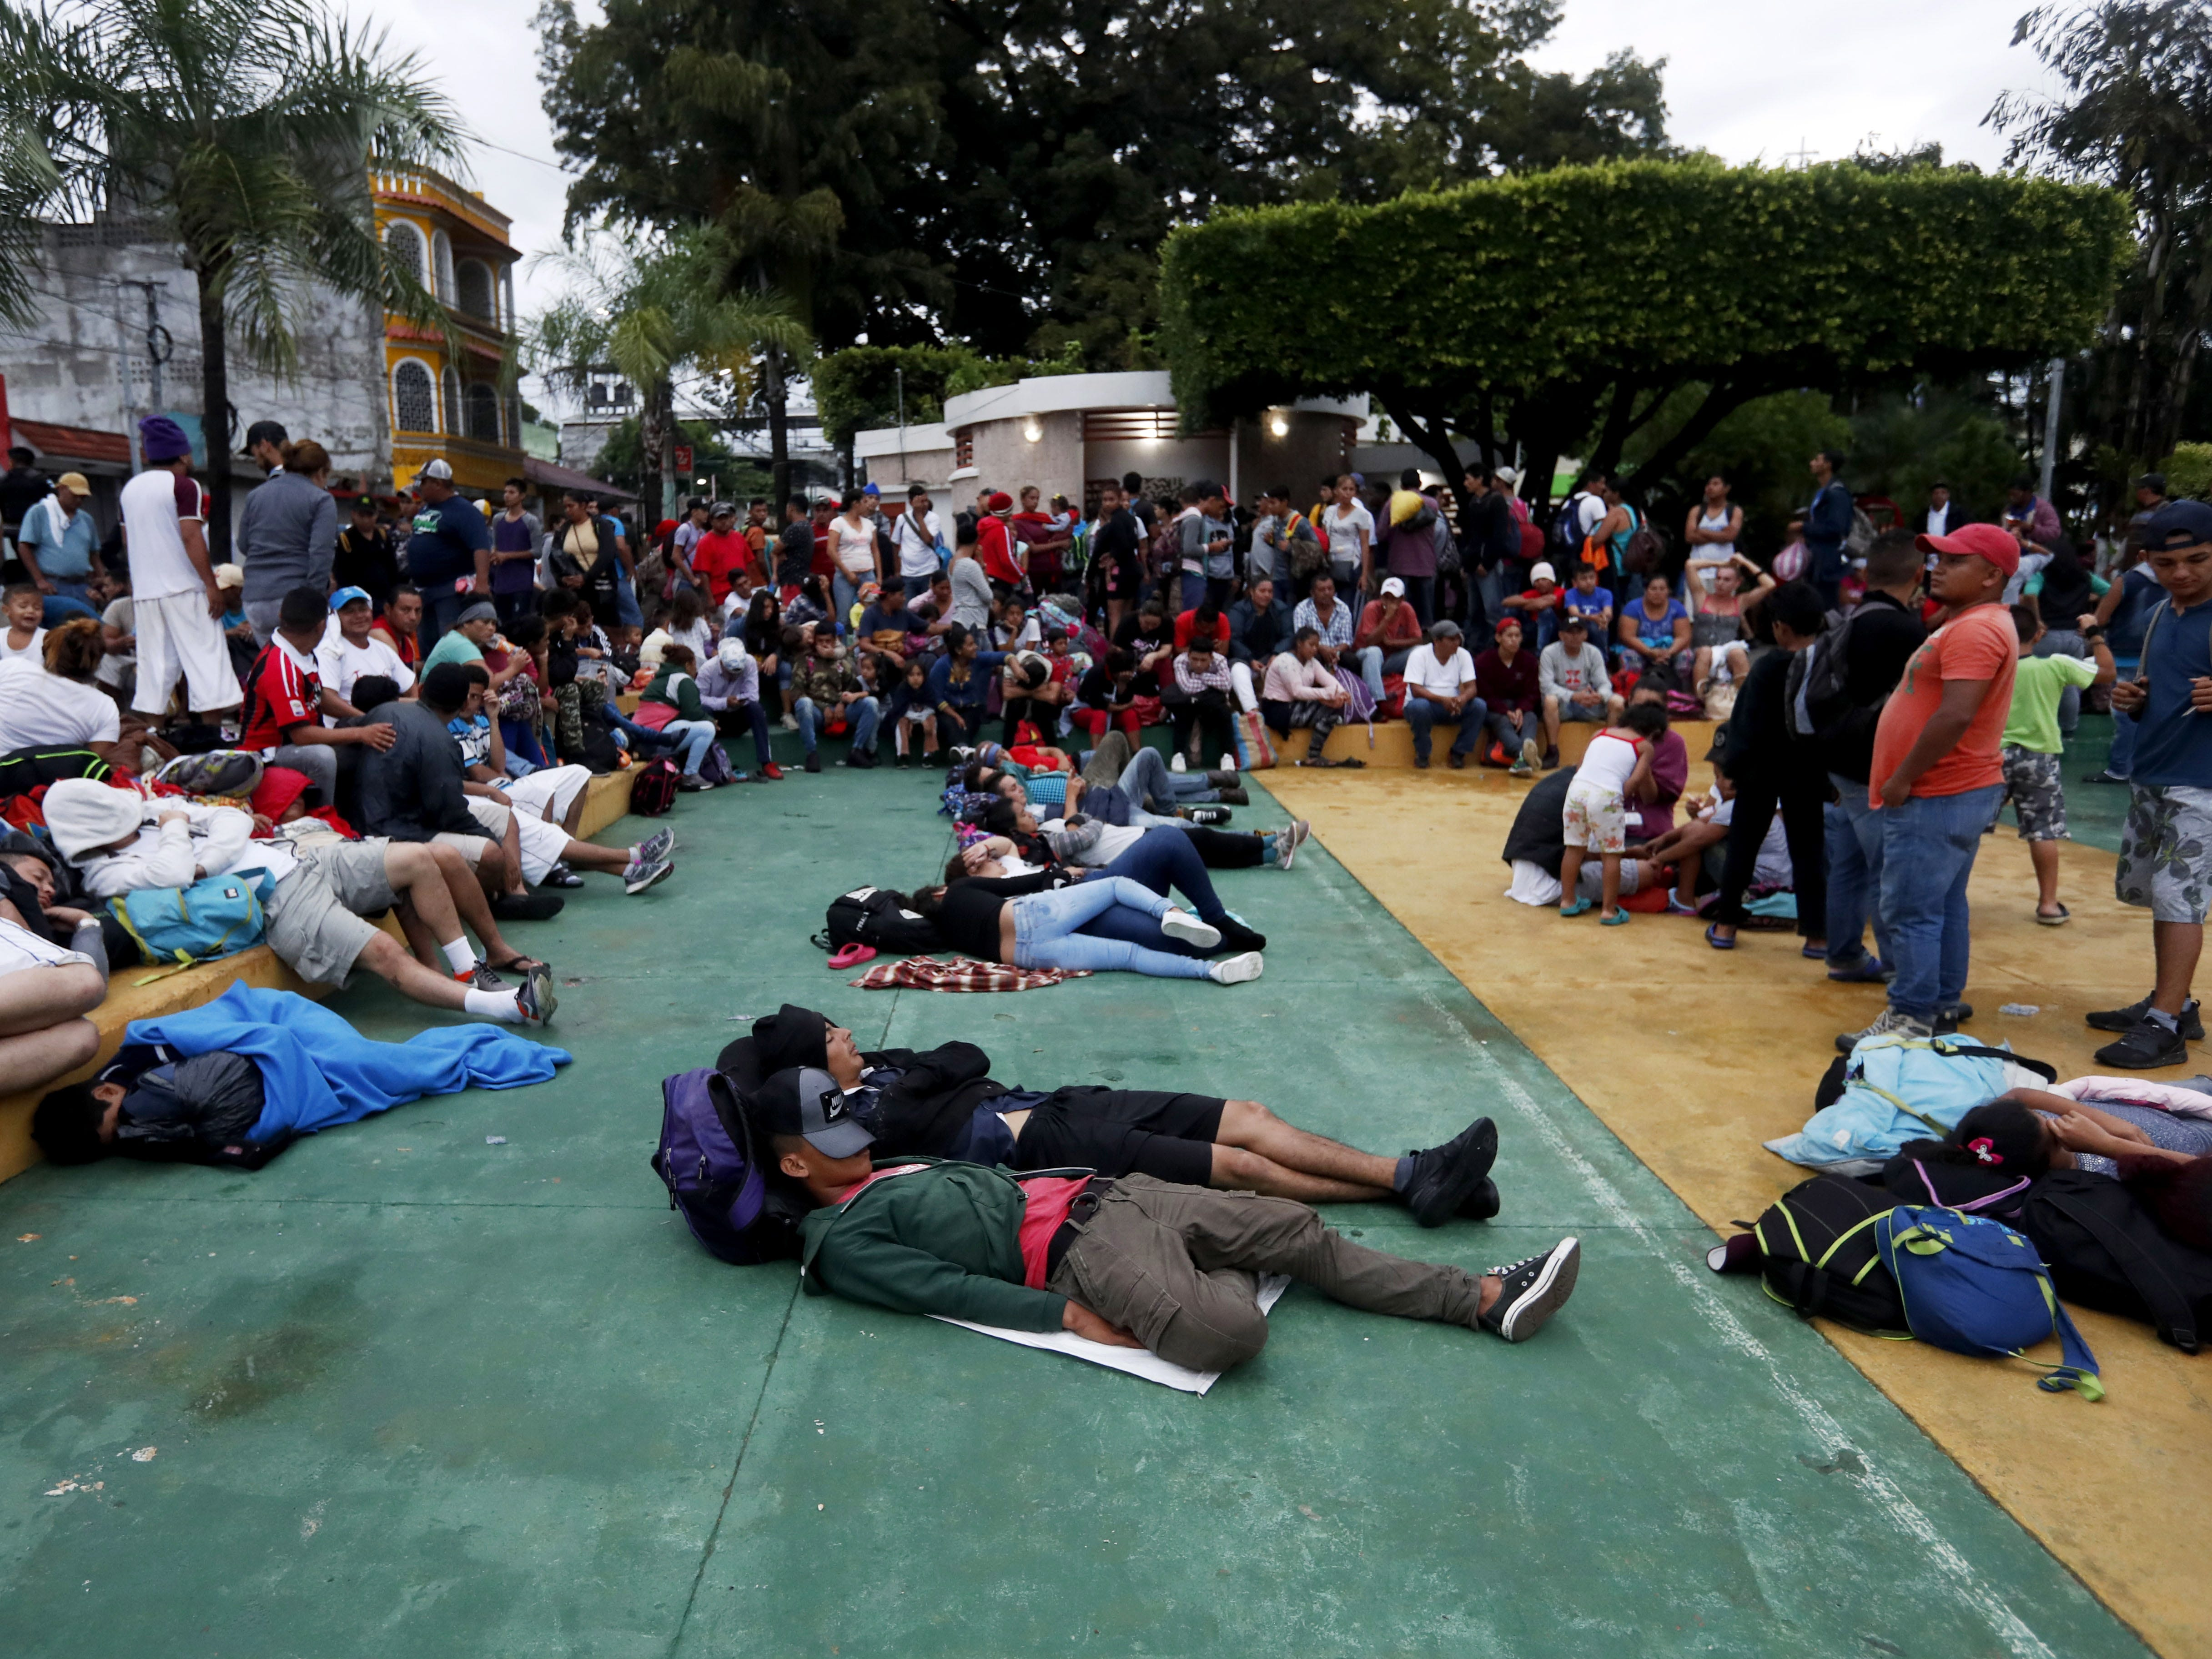 epa07104769 Honduran migrants rest in the Tecun Uman's park in Escuintla, Guatemala, 19 October 2018, before continue their way to Mexico. Migrants, who hope to arrive to the United States to seek better living conditions, slept in an open-air theater and in the Catholic church of Tecun Uman, a few kilometers from the Suchiate River, which divides Guatemala and Mexico, where a group of migrants has already started a new stage of the crossing.  EPA-EFE/ESTEBAN BIBA ORG XMIT: GU502